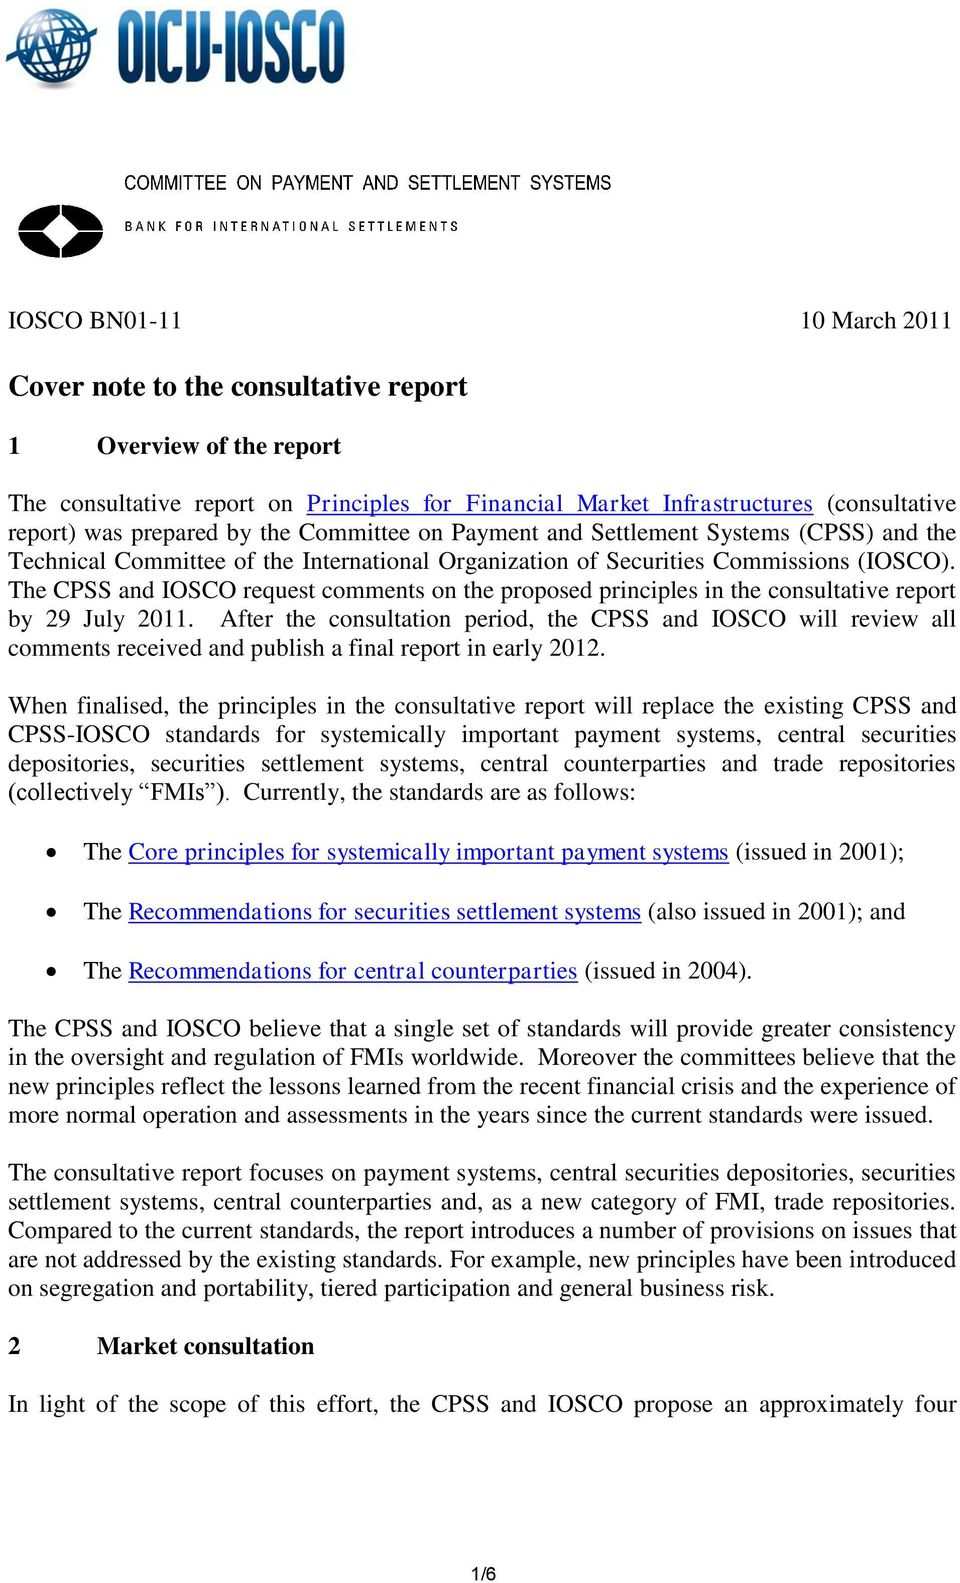 The CPSS and IOSCO request comments on the proposed principles in the consultative report by 29 July 2011.